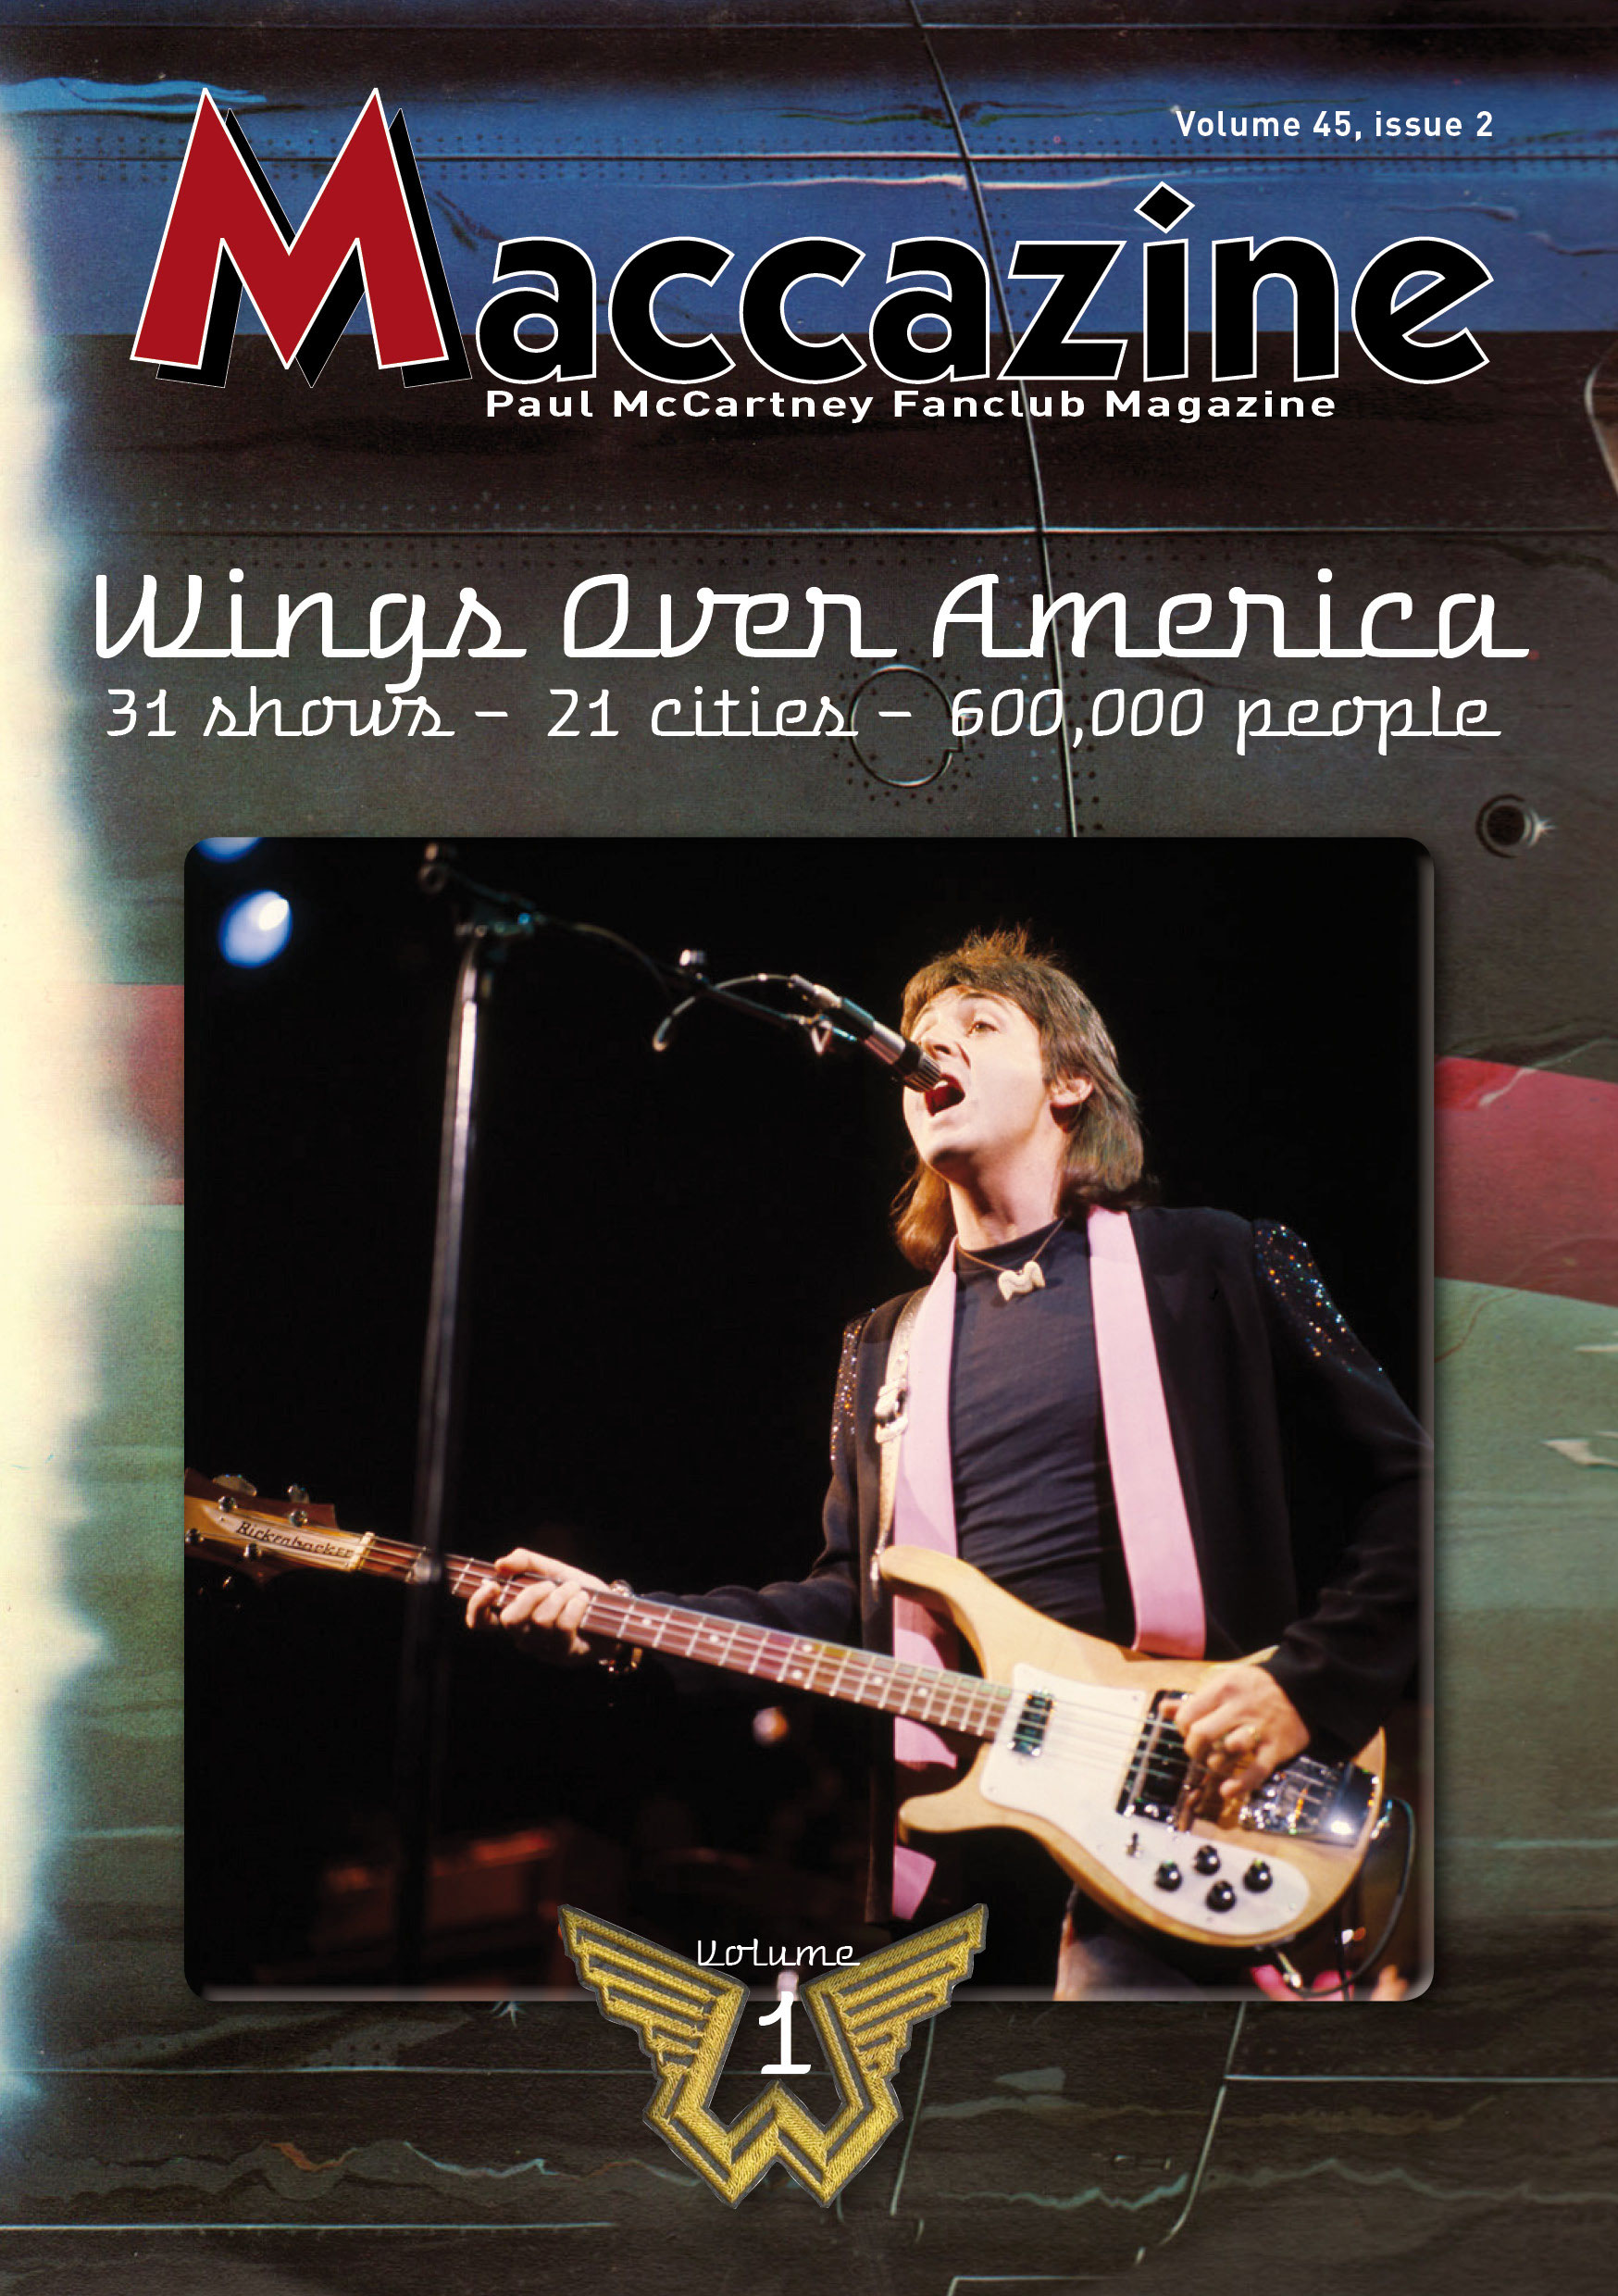 2017 45-2 Wings Over America Part 1 - The best magazine